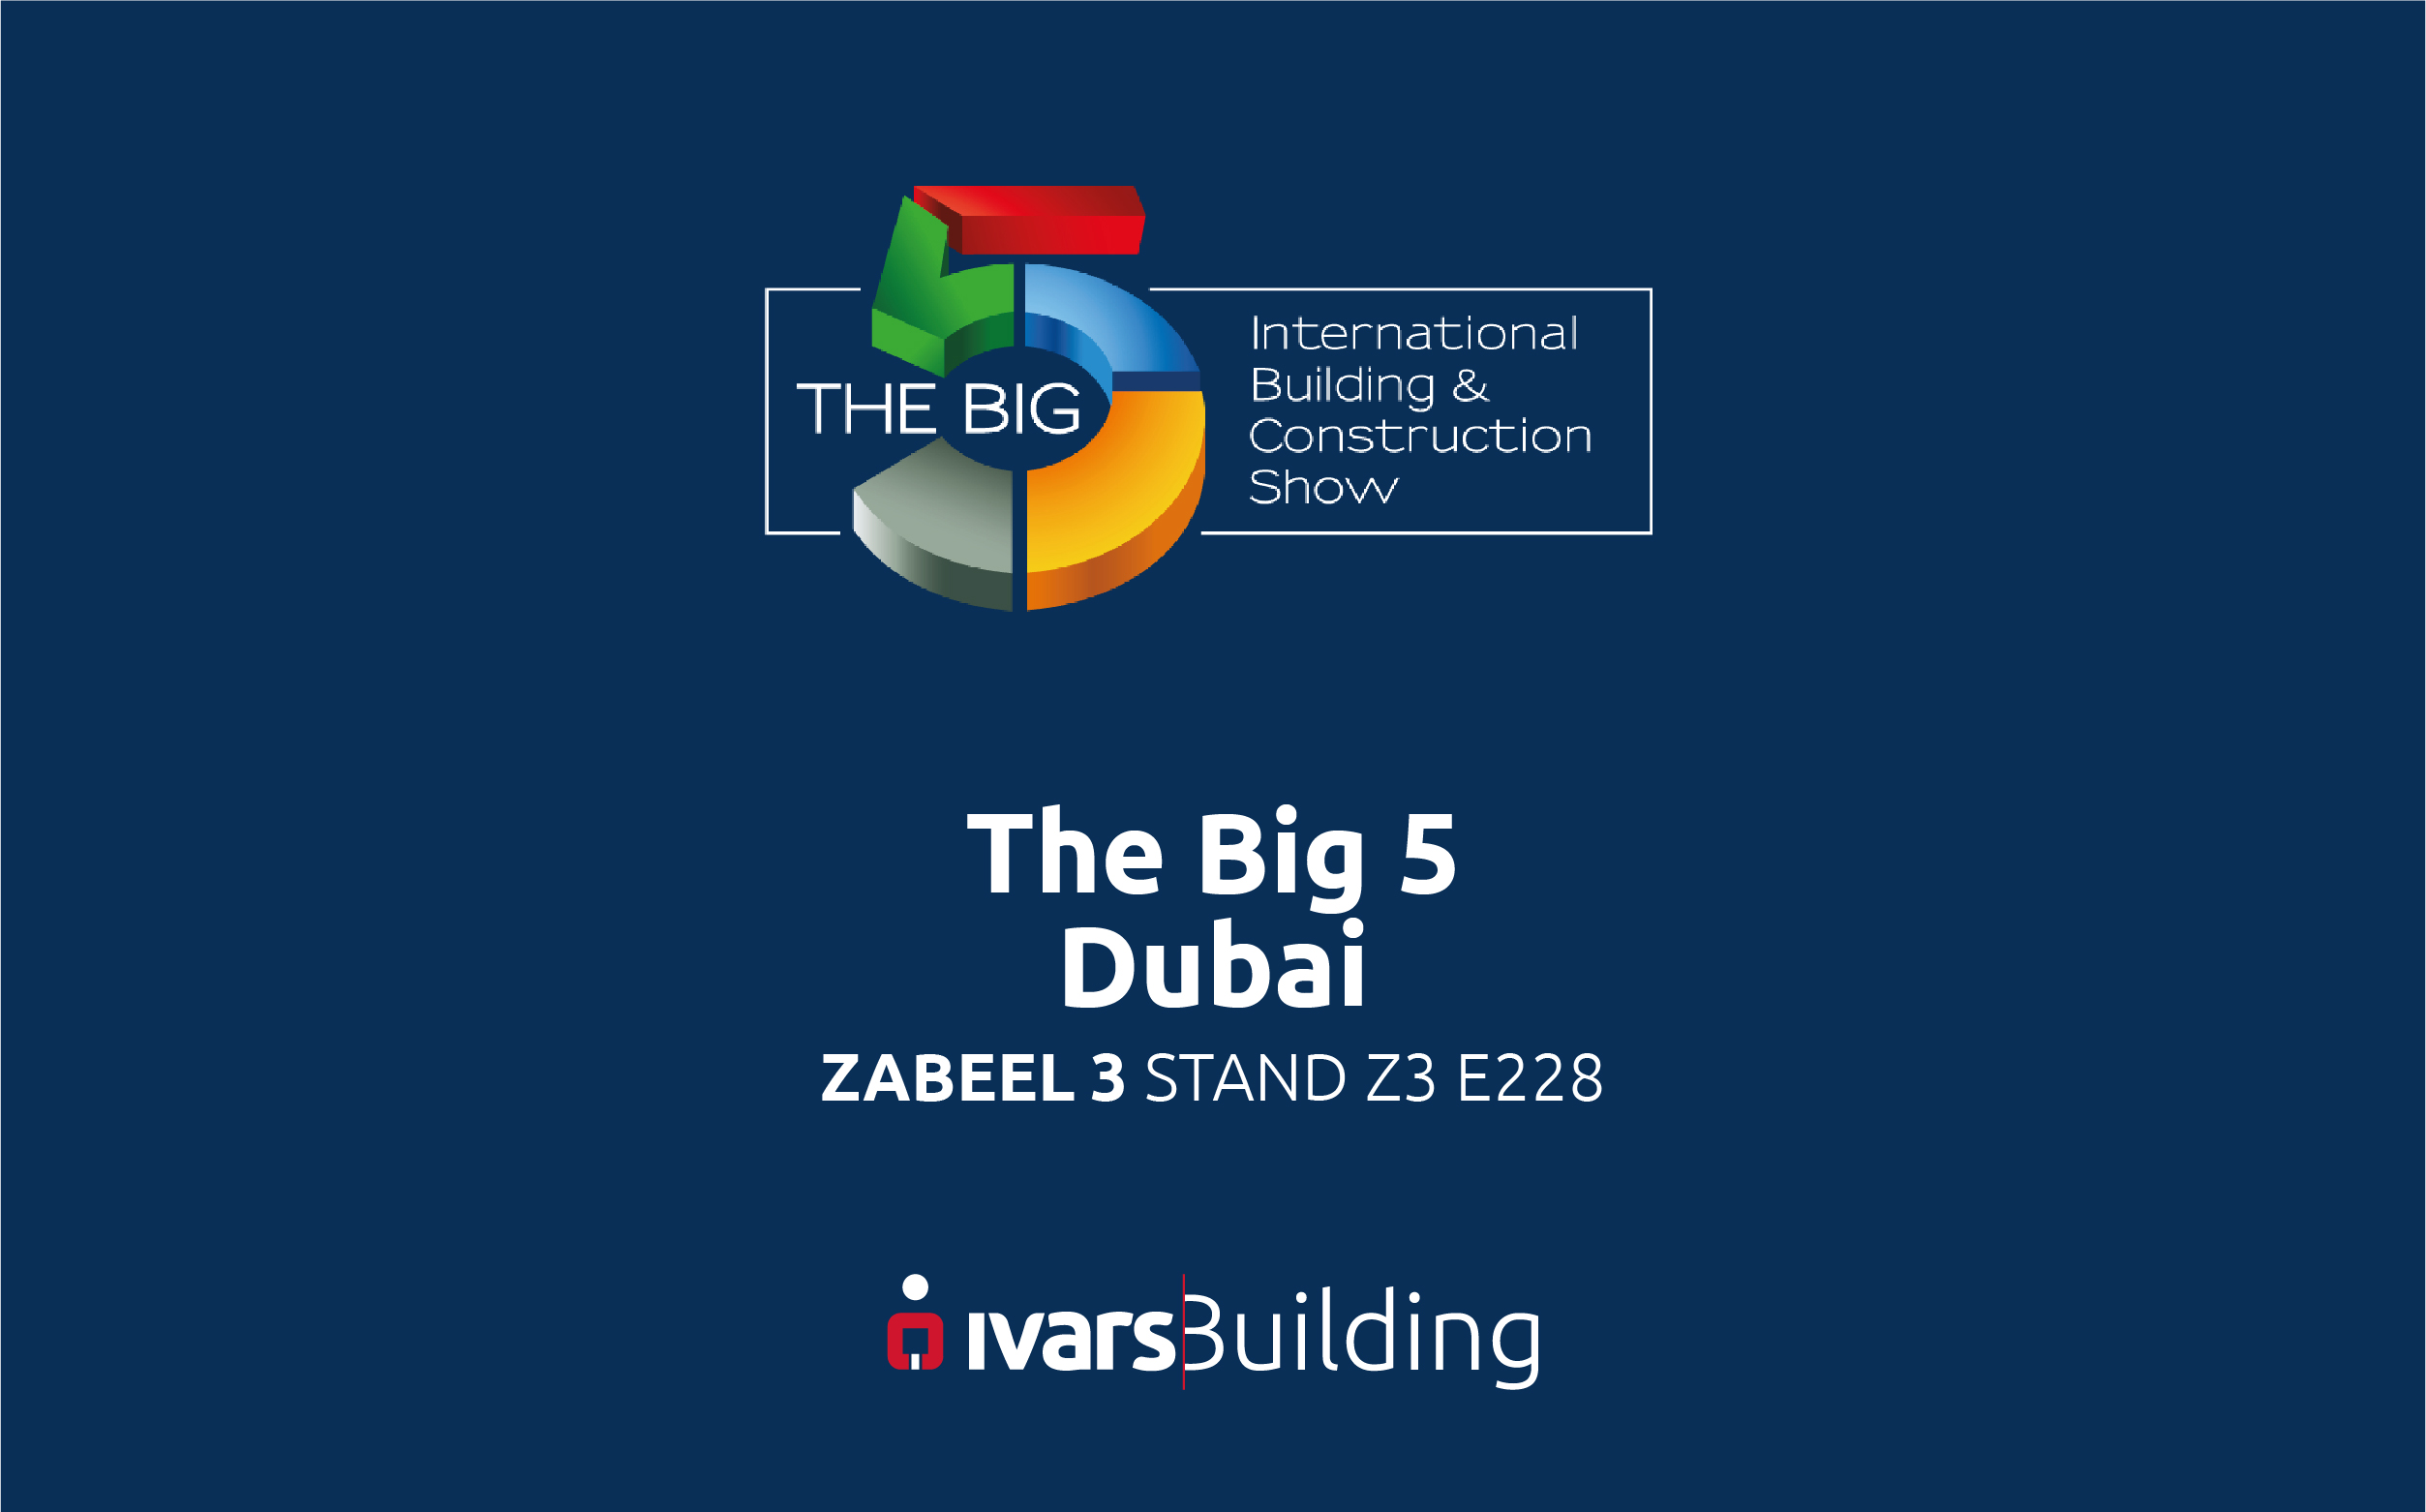 ivars-building-division-will-be-attending-the-big-5-from-25th-to-28th-november